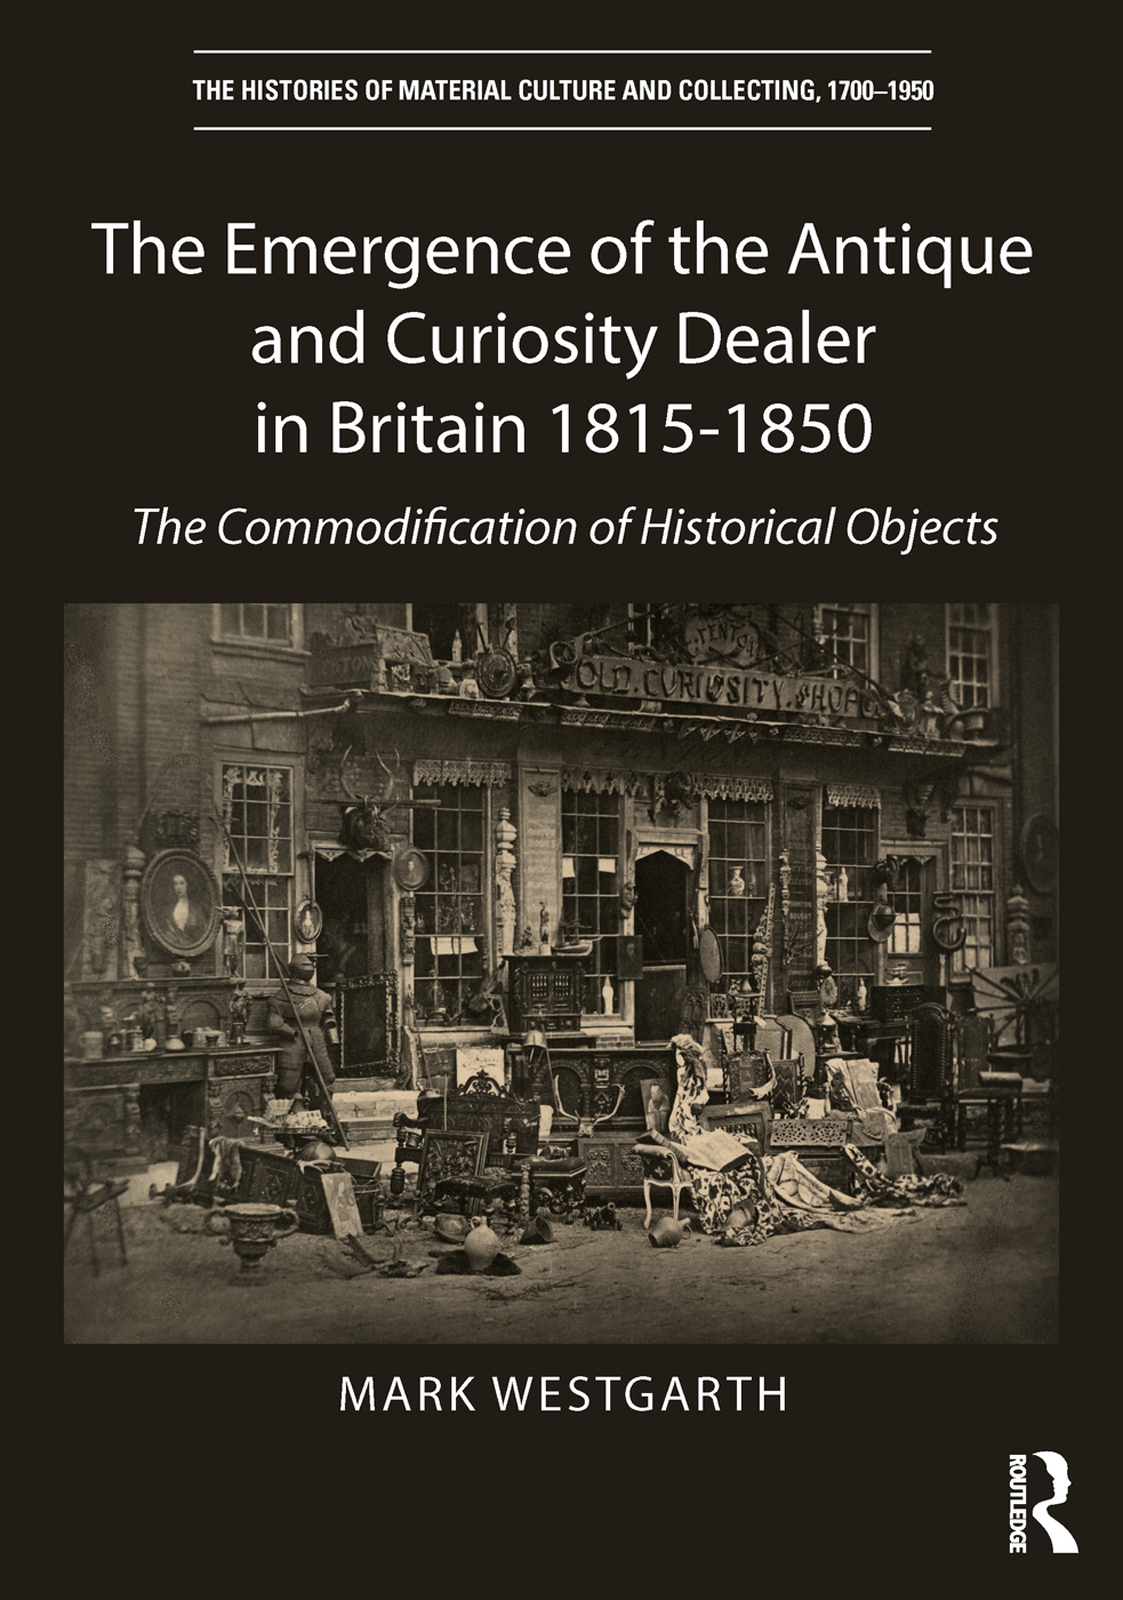 The Emergence of the Antique and Curiosity Dealer in Britain 1815-1850: The Commodification of Historical Objects book cover